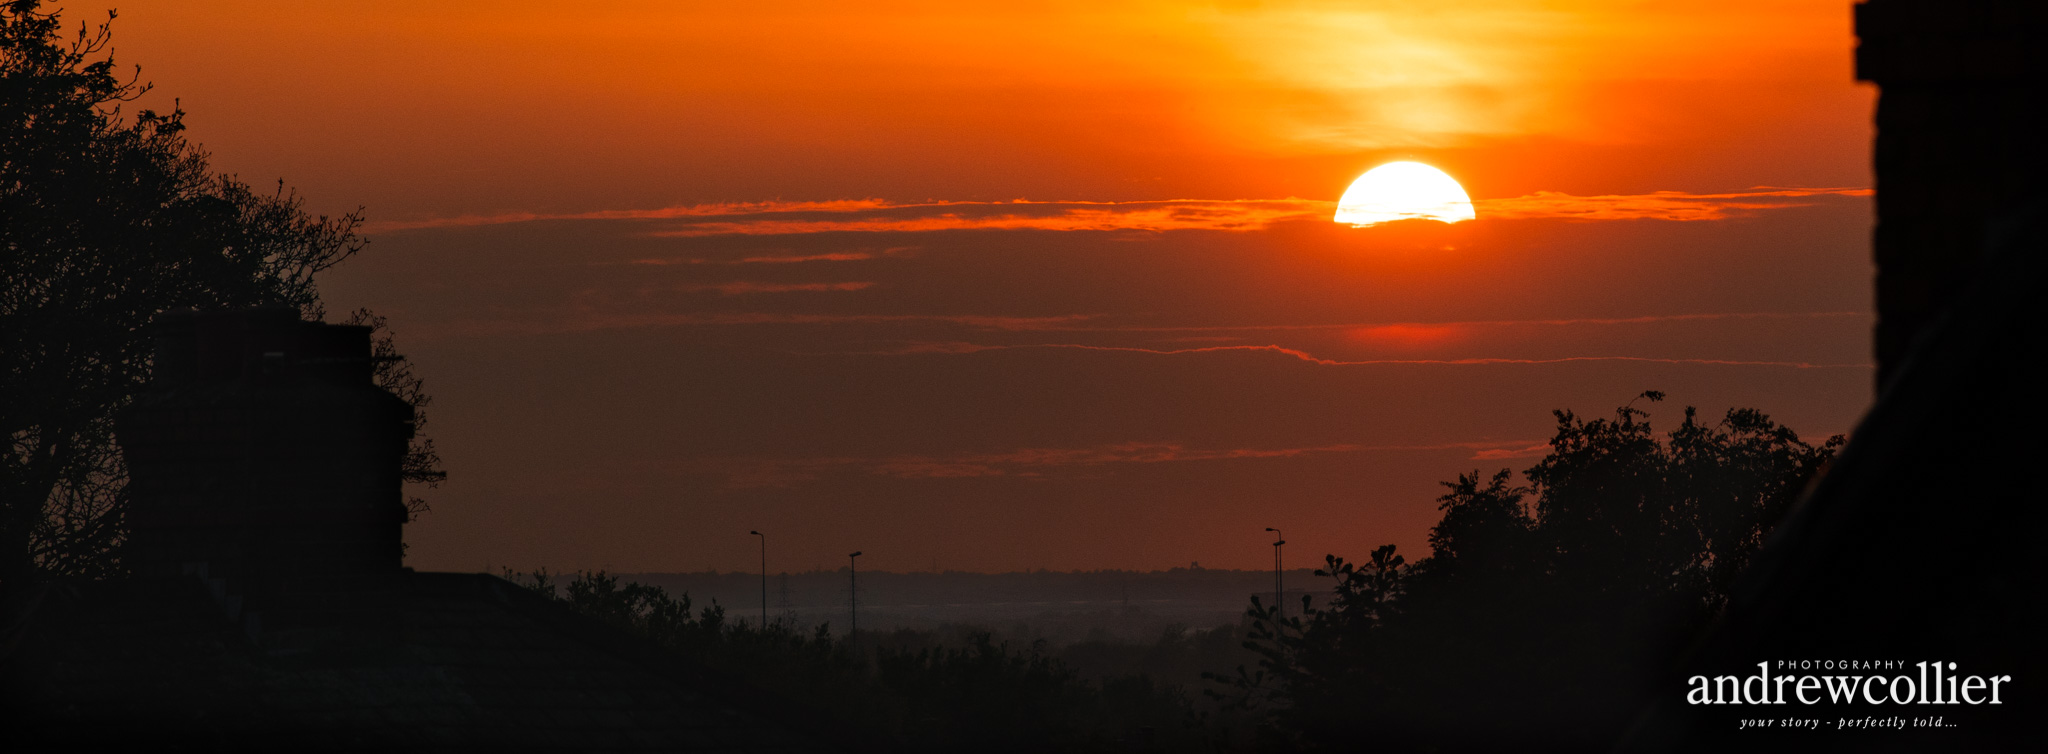 Sunset over Thelwall viaduct